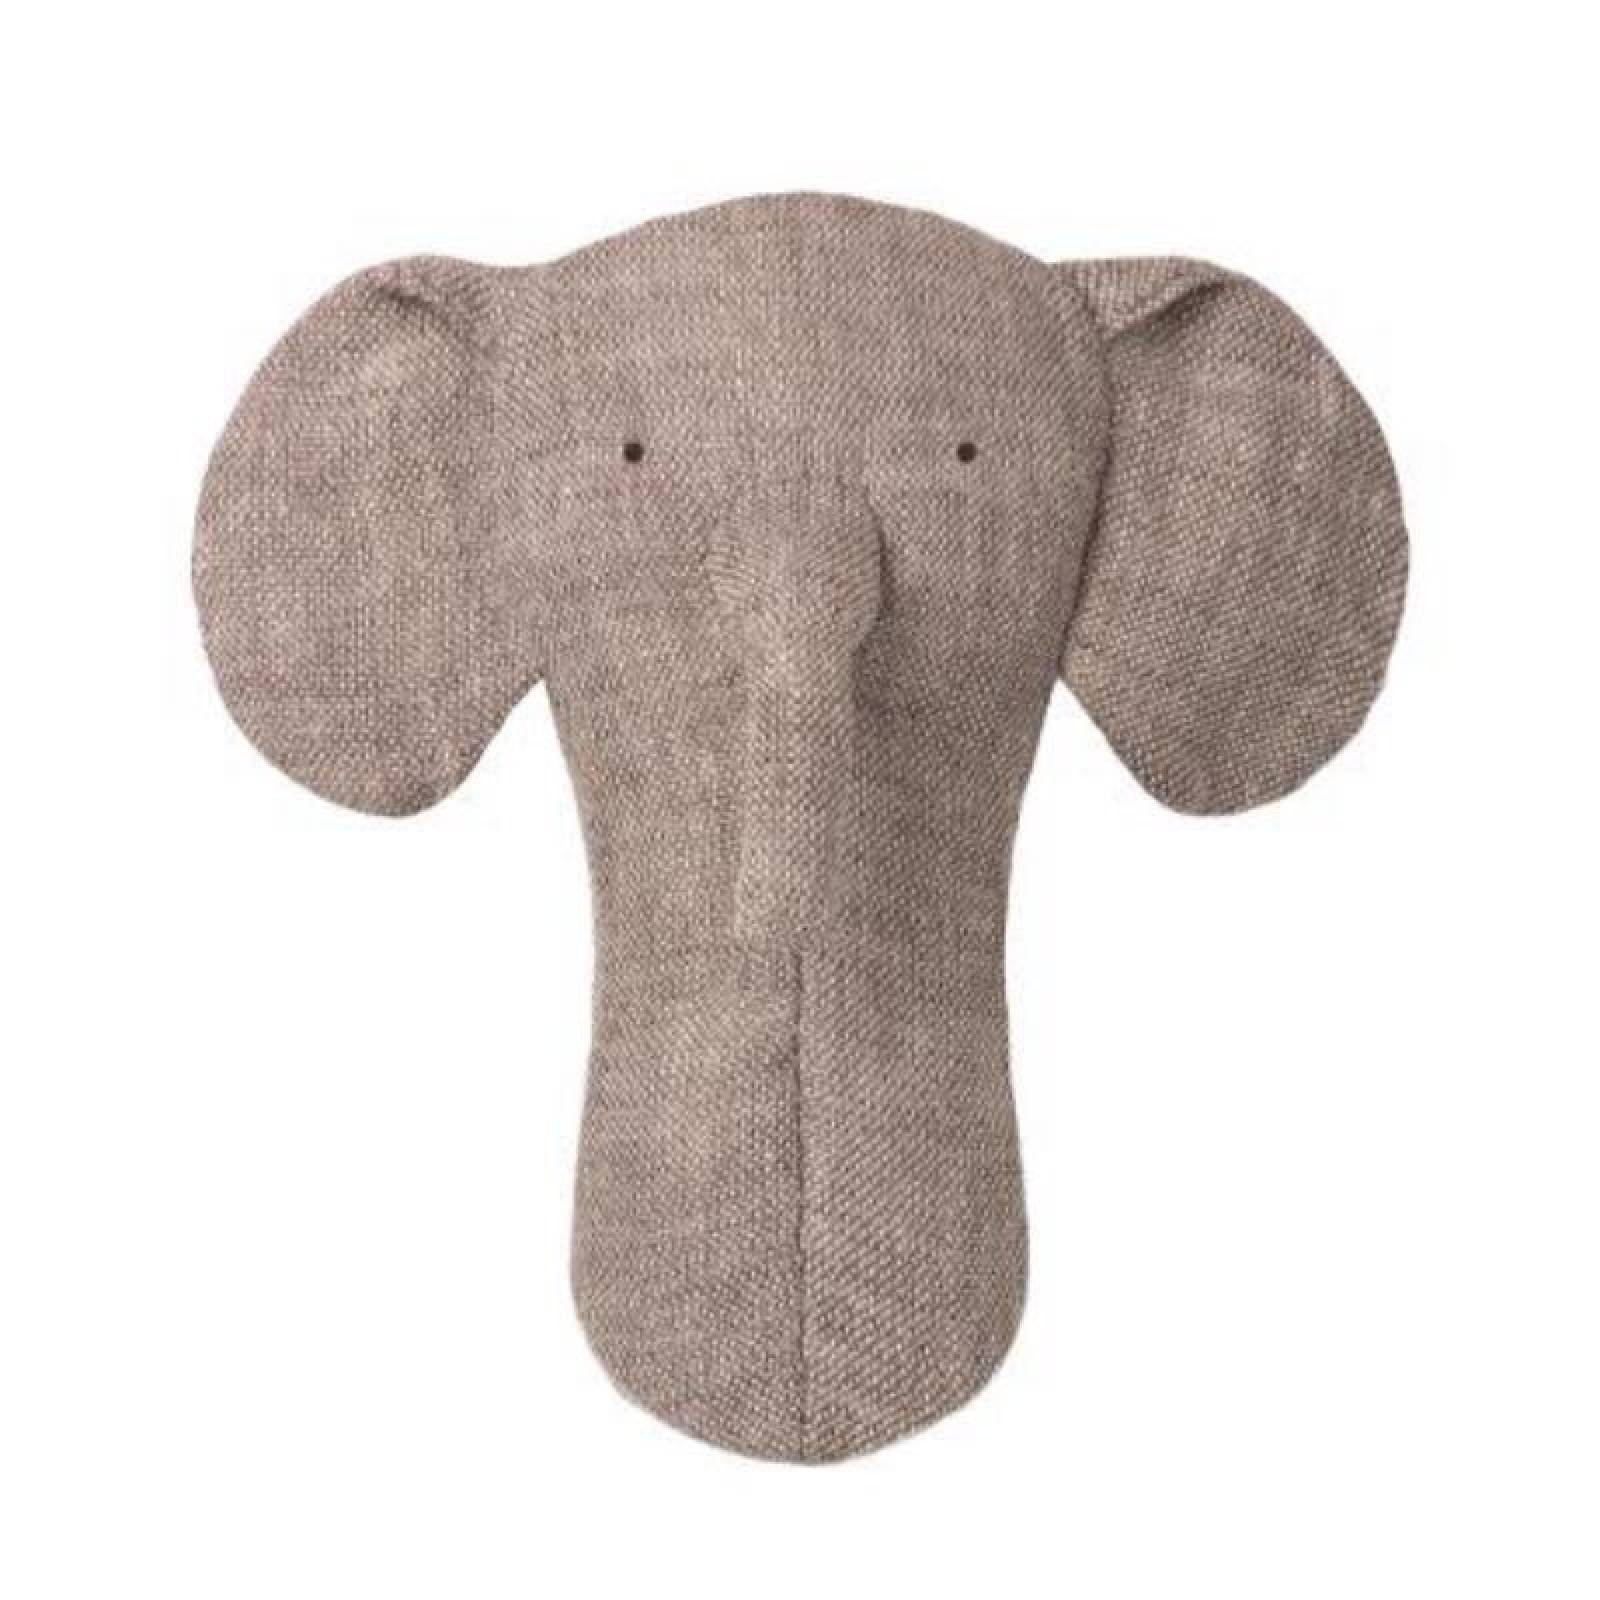 Elephant Small Soft Toy With Crinkly Ears